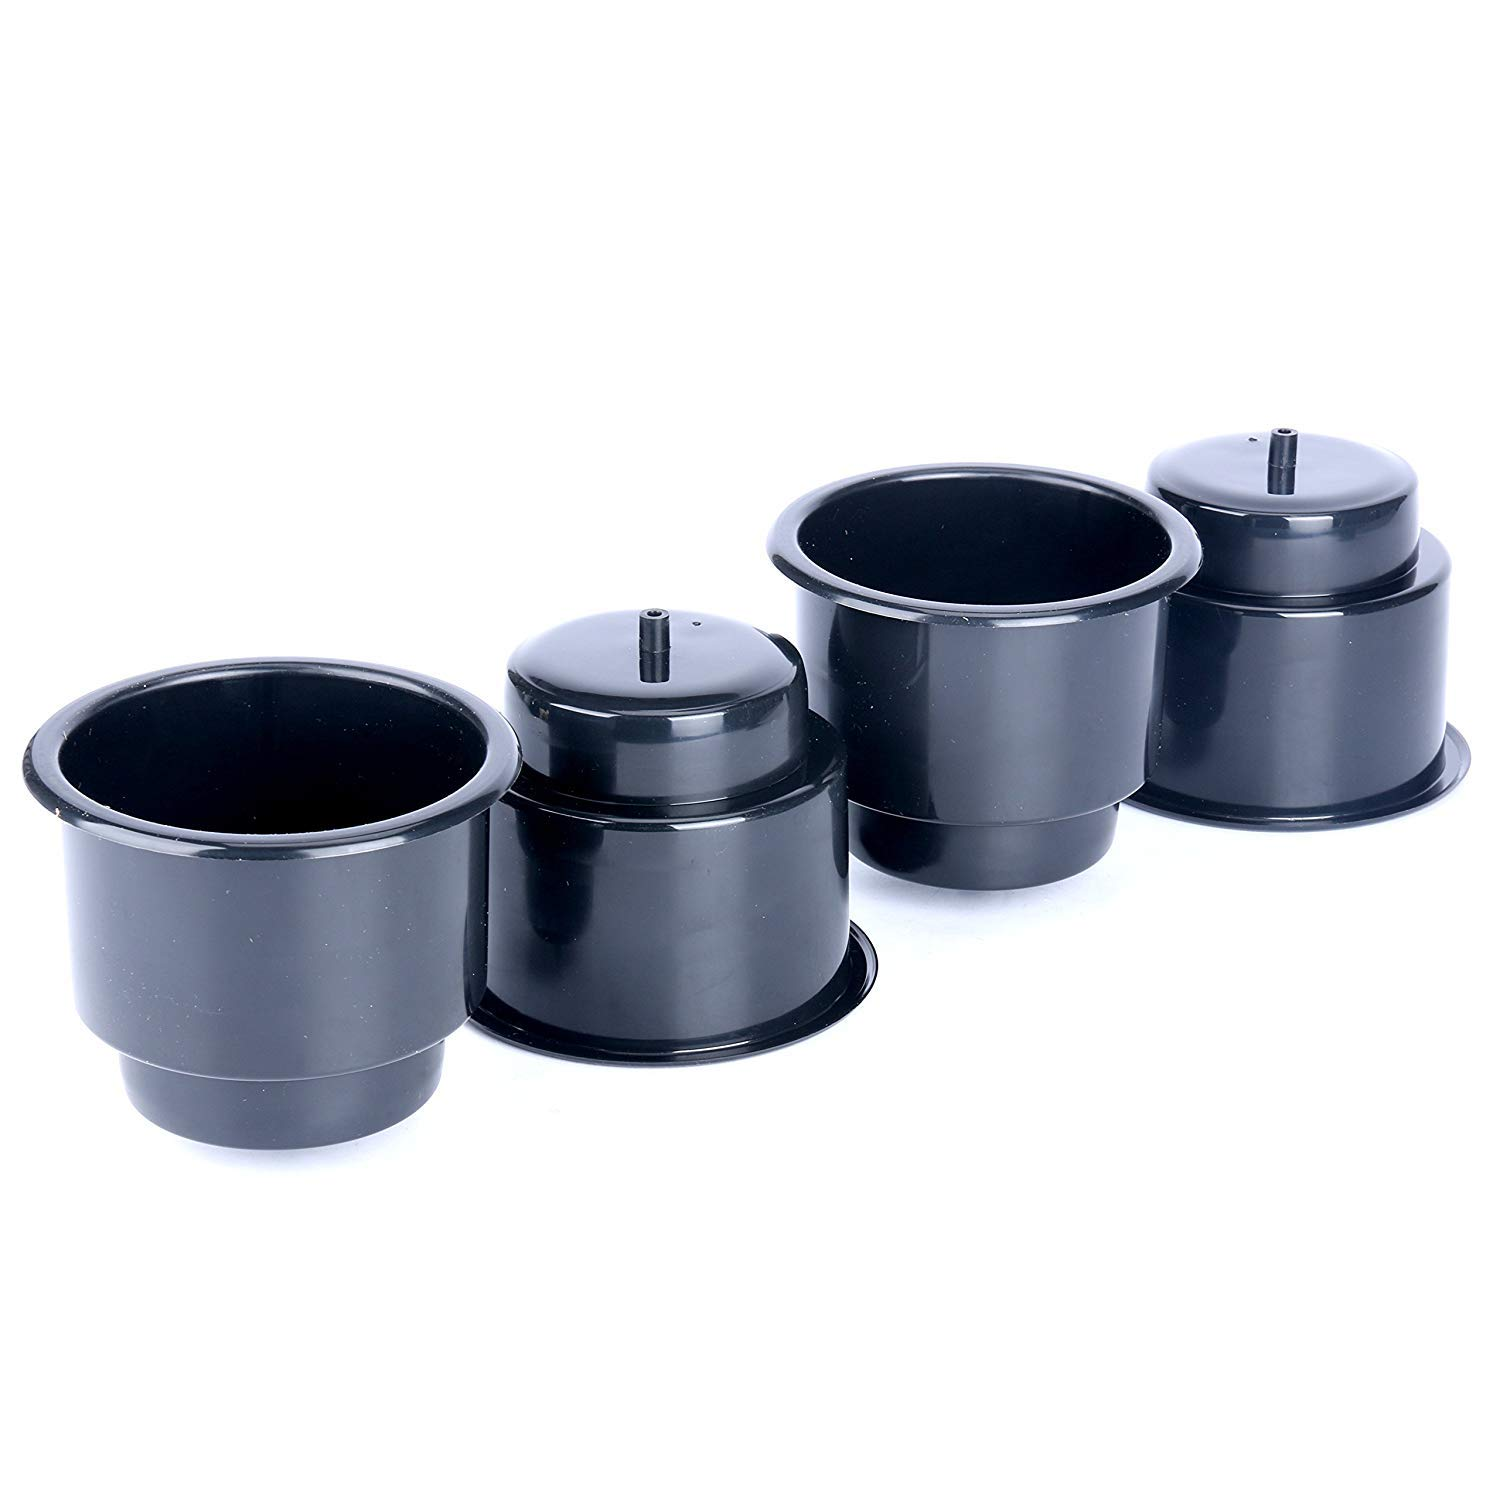 Set of 4 Amarine Made Black Amarine-made 4cupholders-Black Black Recessed Drop in Plastic Cup Drink Can Holder with Drain for Boat Car Marine Rv